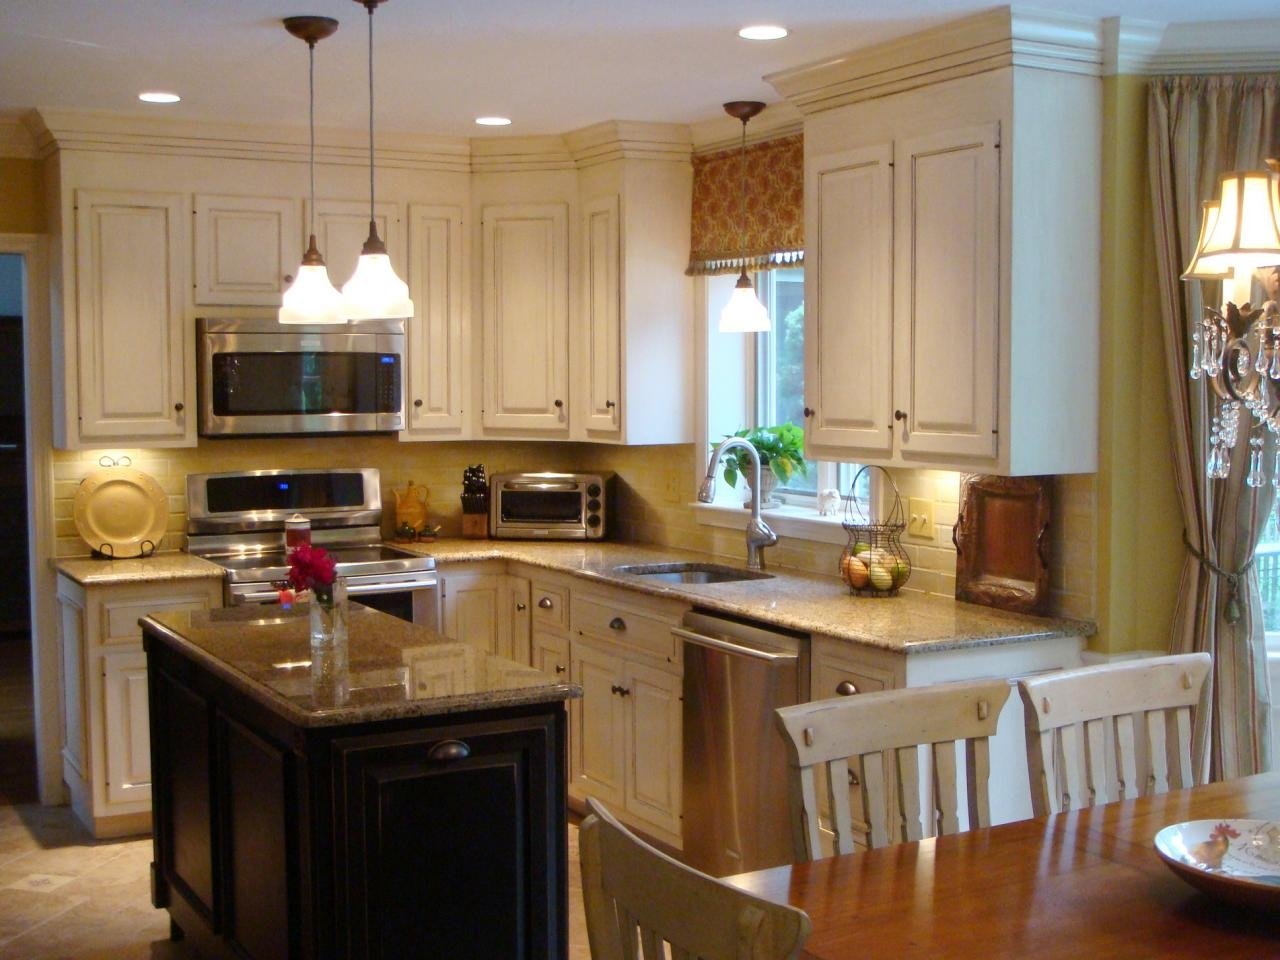 French Country Kitchen Cabinet Refacing